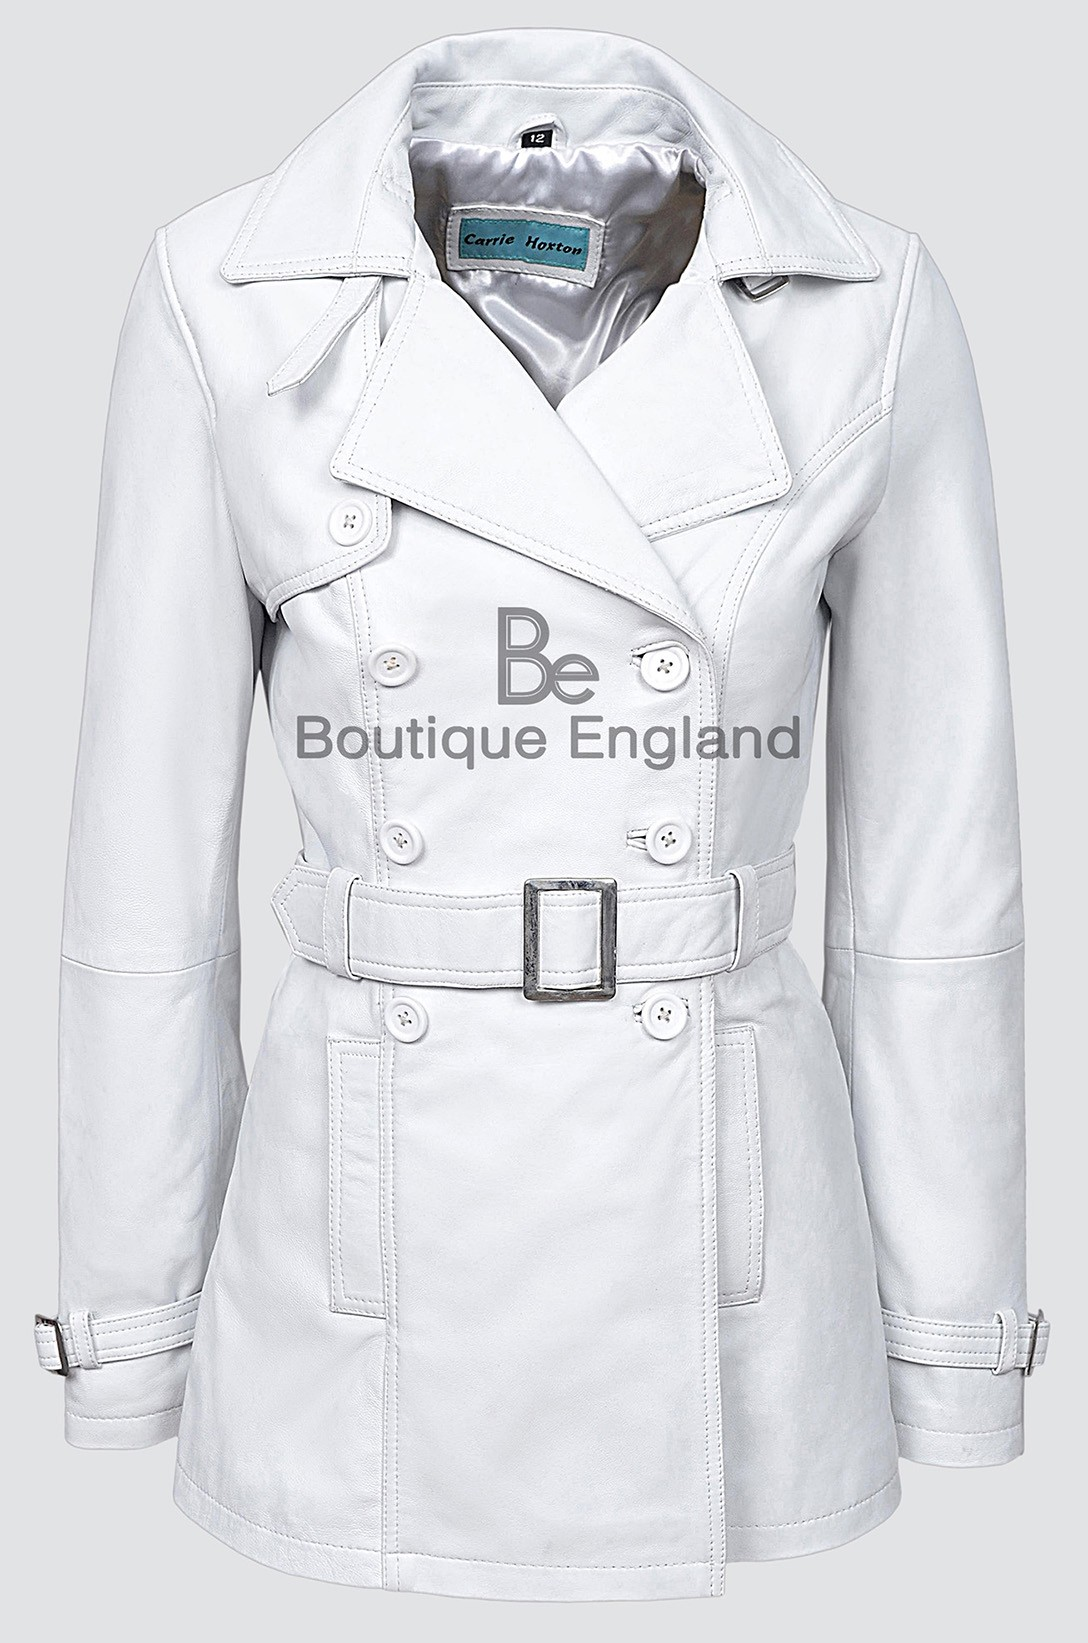 TRENCH White Ladies Classic Mid-Length Designer Real Nappa Leather Jacket Coat